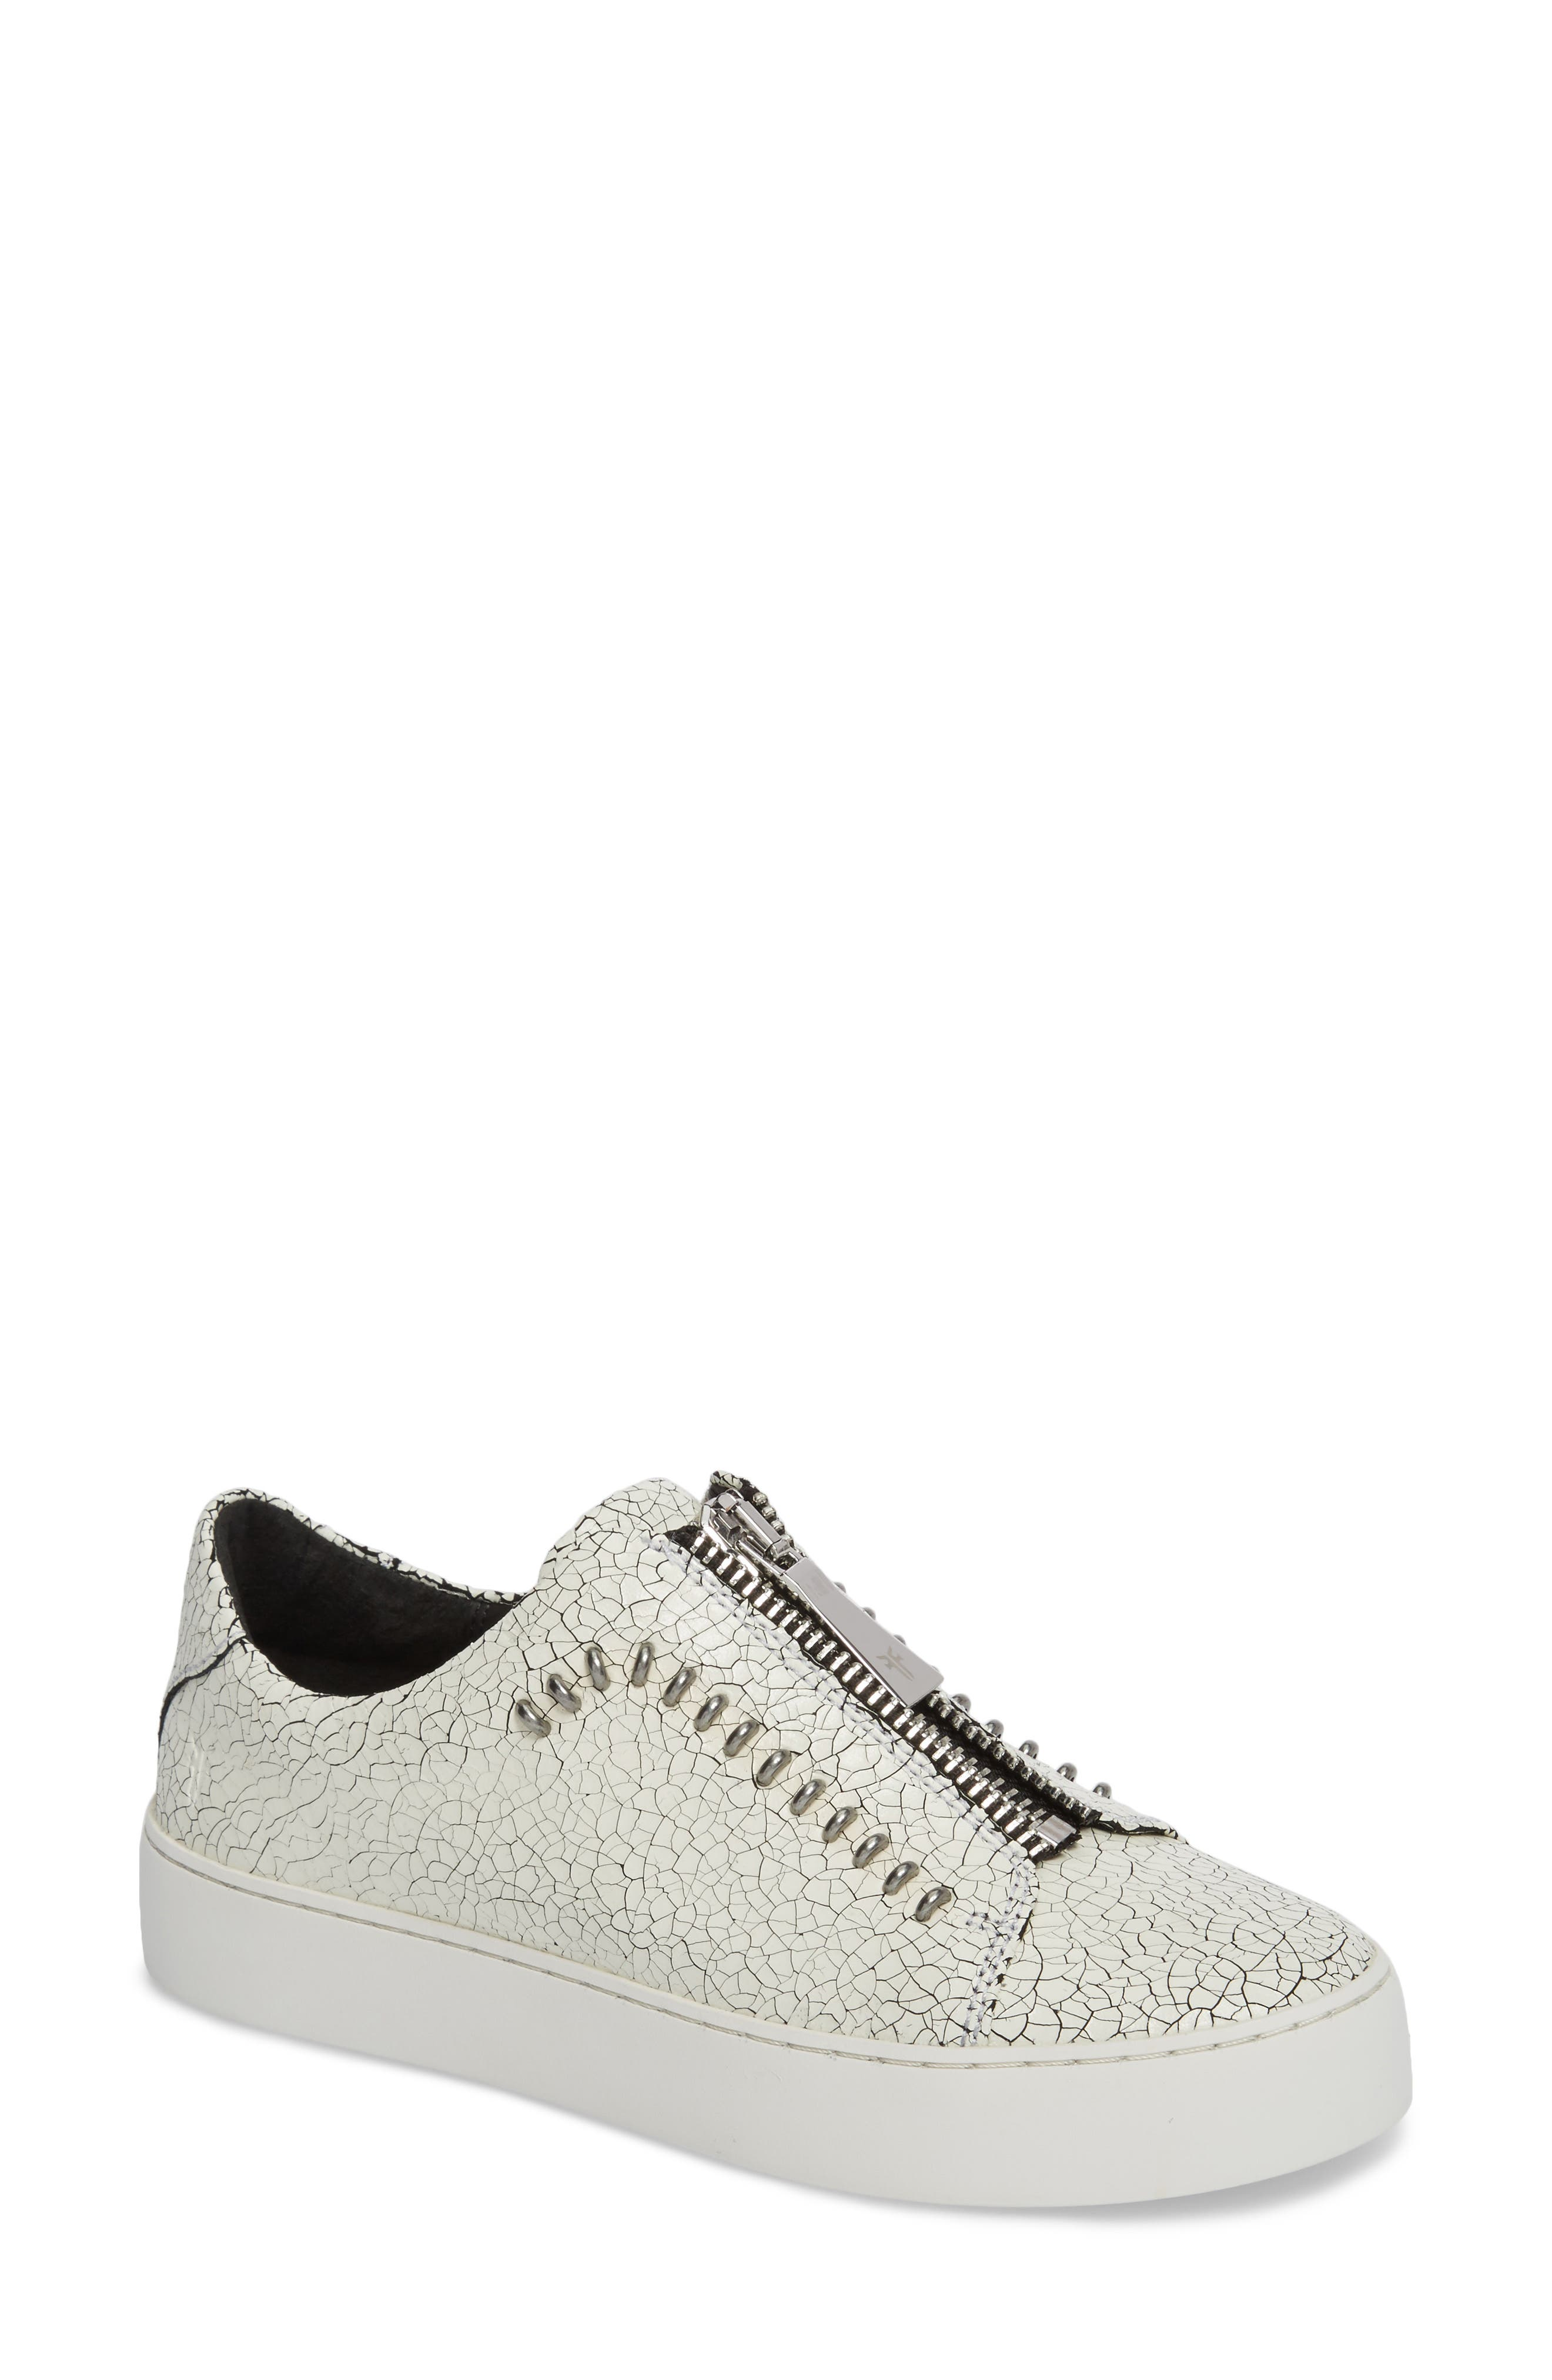 Lena Rebel Zip Sneaker,                         Main,                         color, WHITE LEATHER